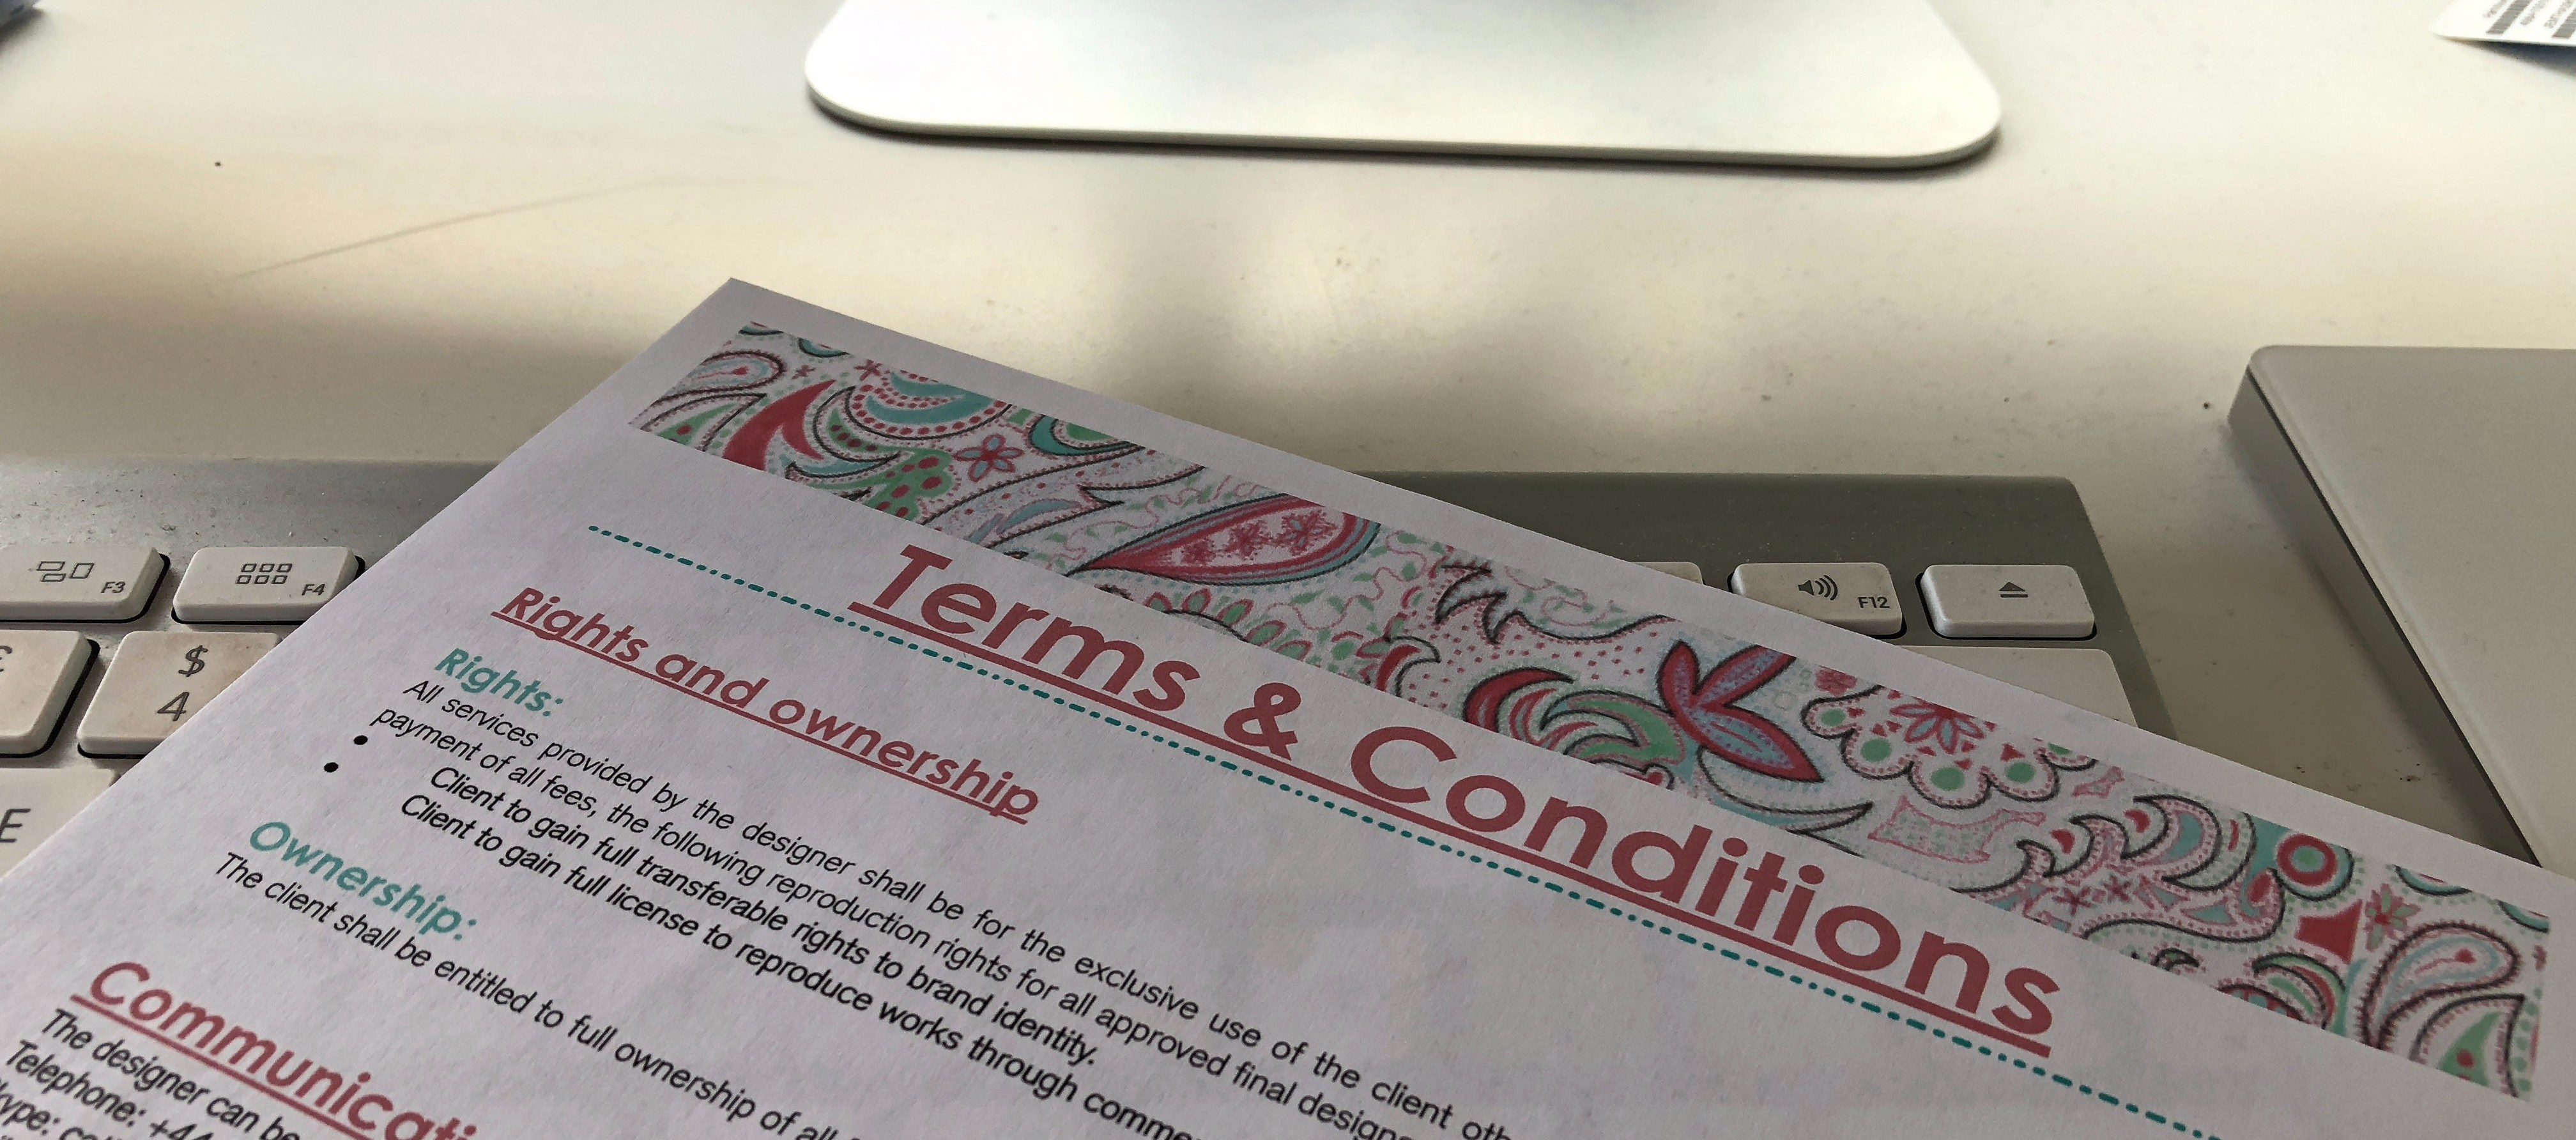 Terms-and-Conditions-document